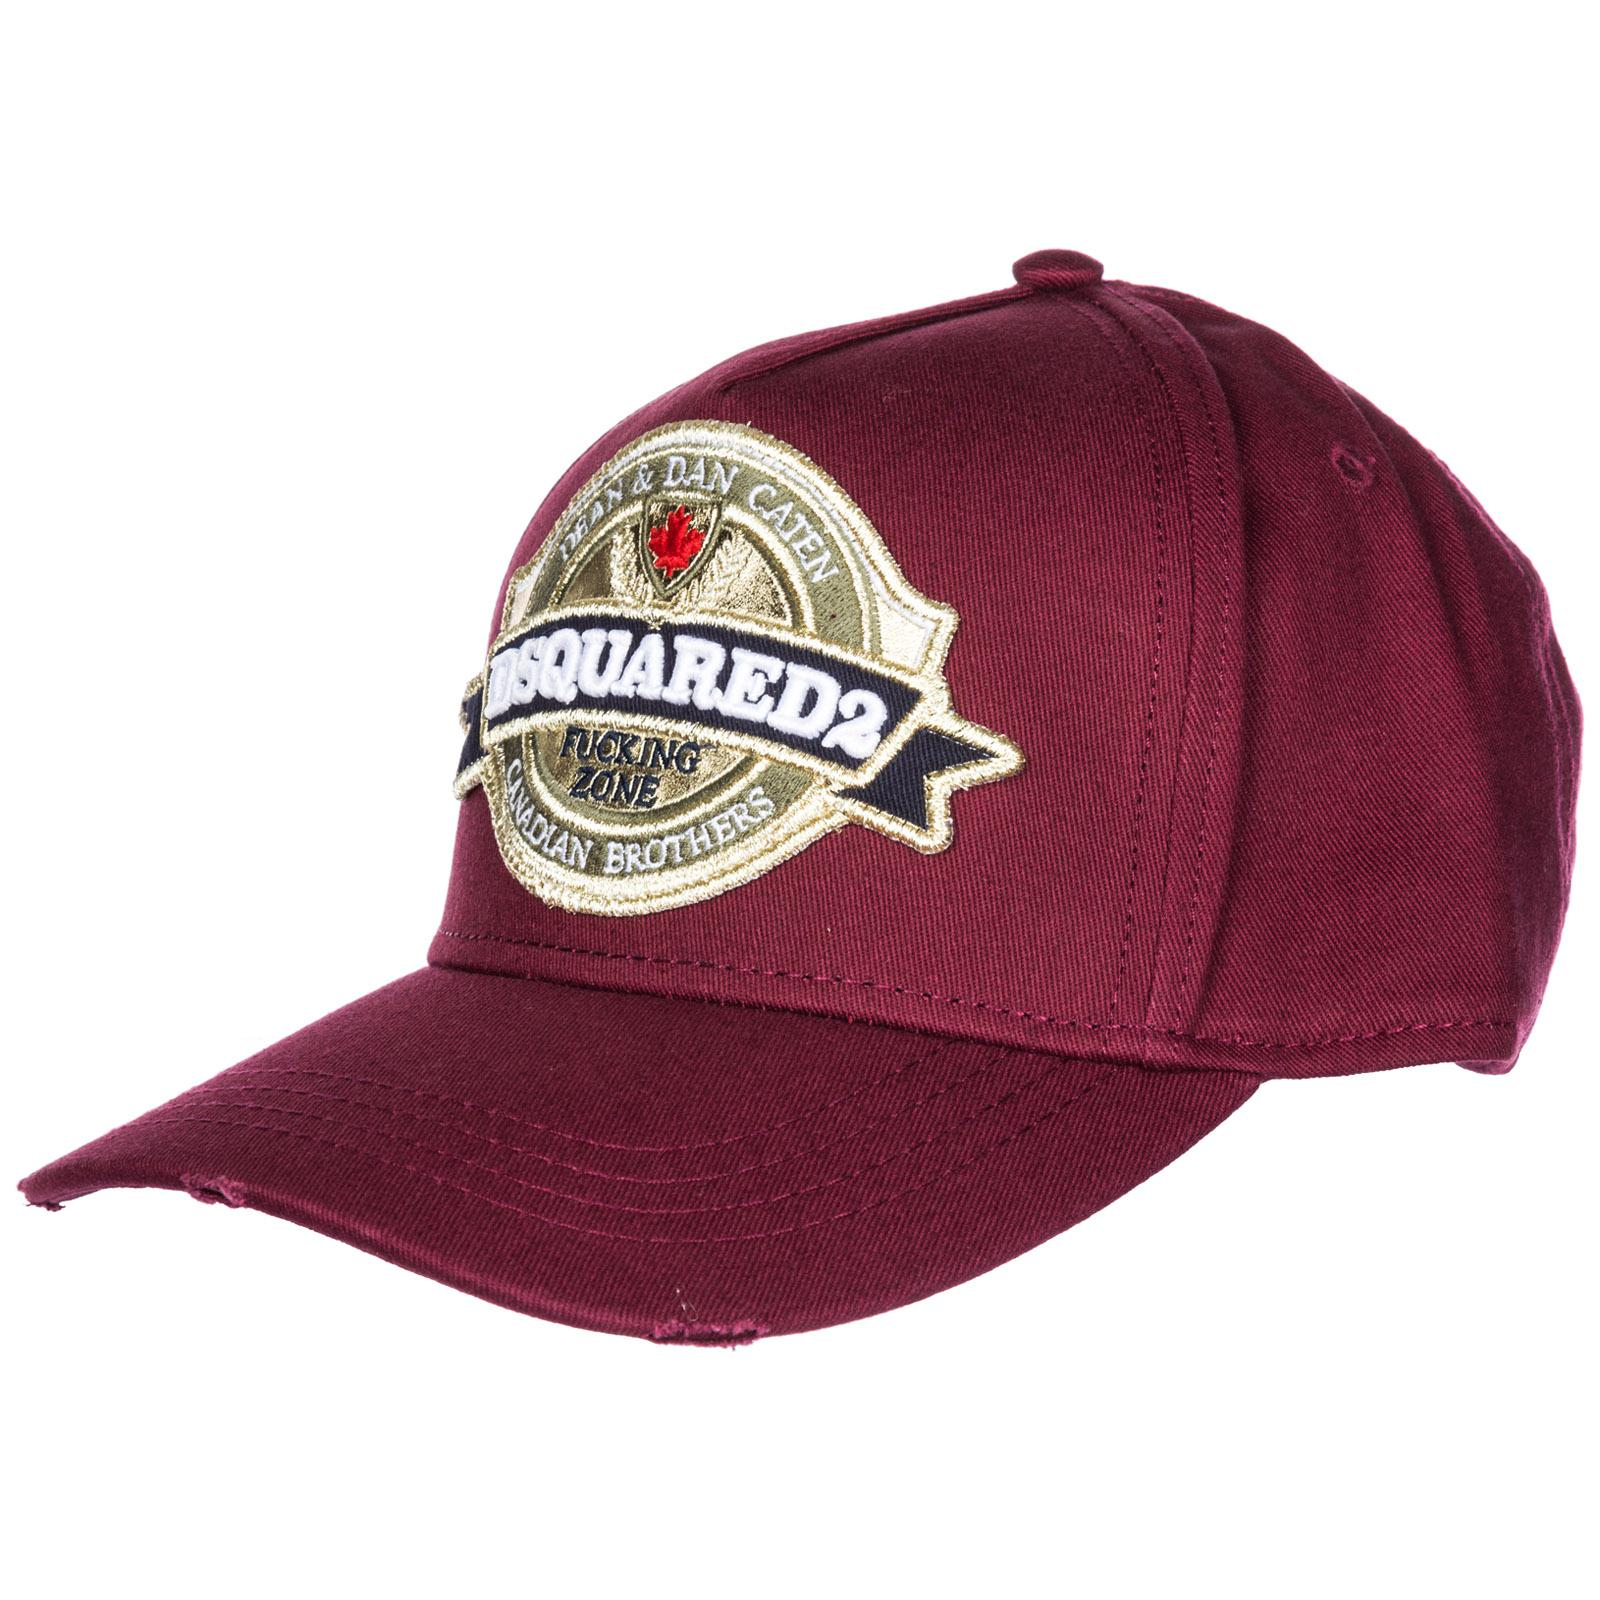 9b4a3f9ca9963 DSquared². Men s Adjustable Cotton Hat Baseball Cap Canadian Brothers